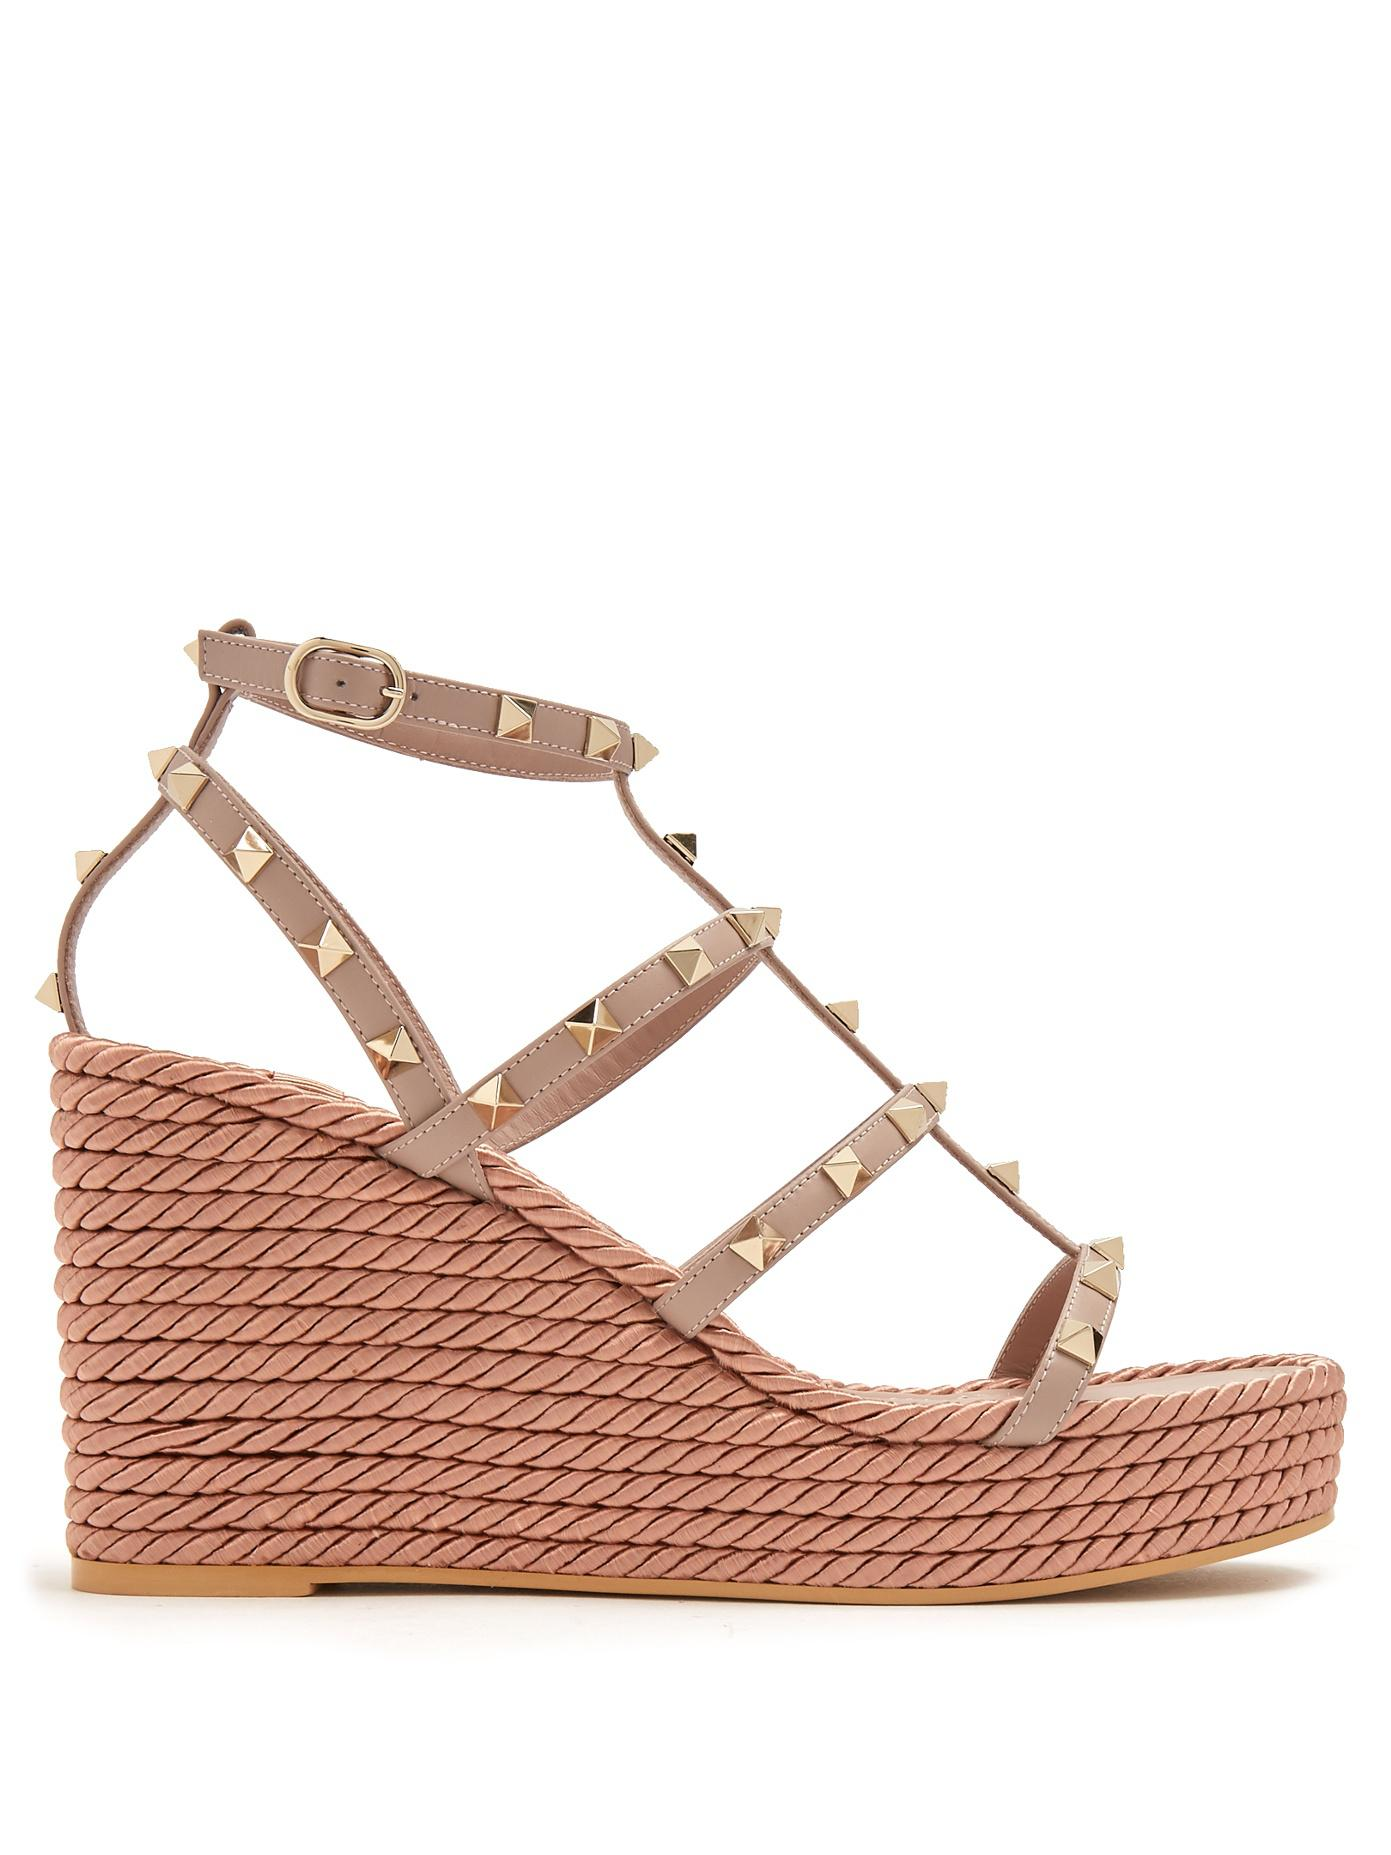 8e9d9f4109ba Valentino Torchon Rockstud Leather Wedge Sandals - Lyst